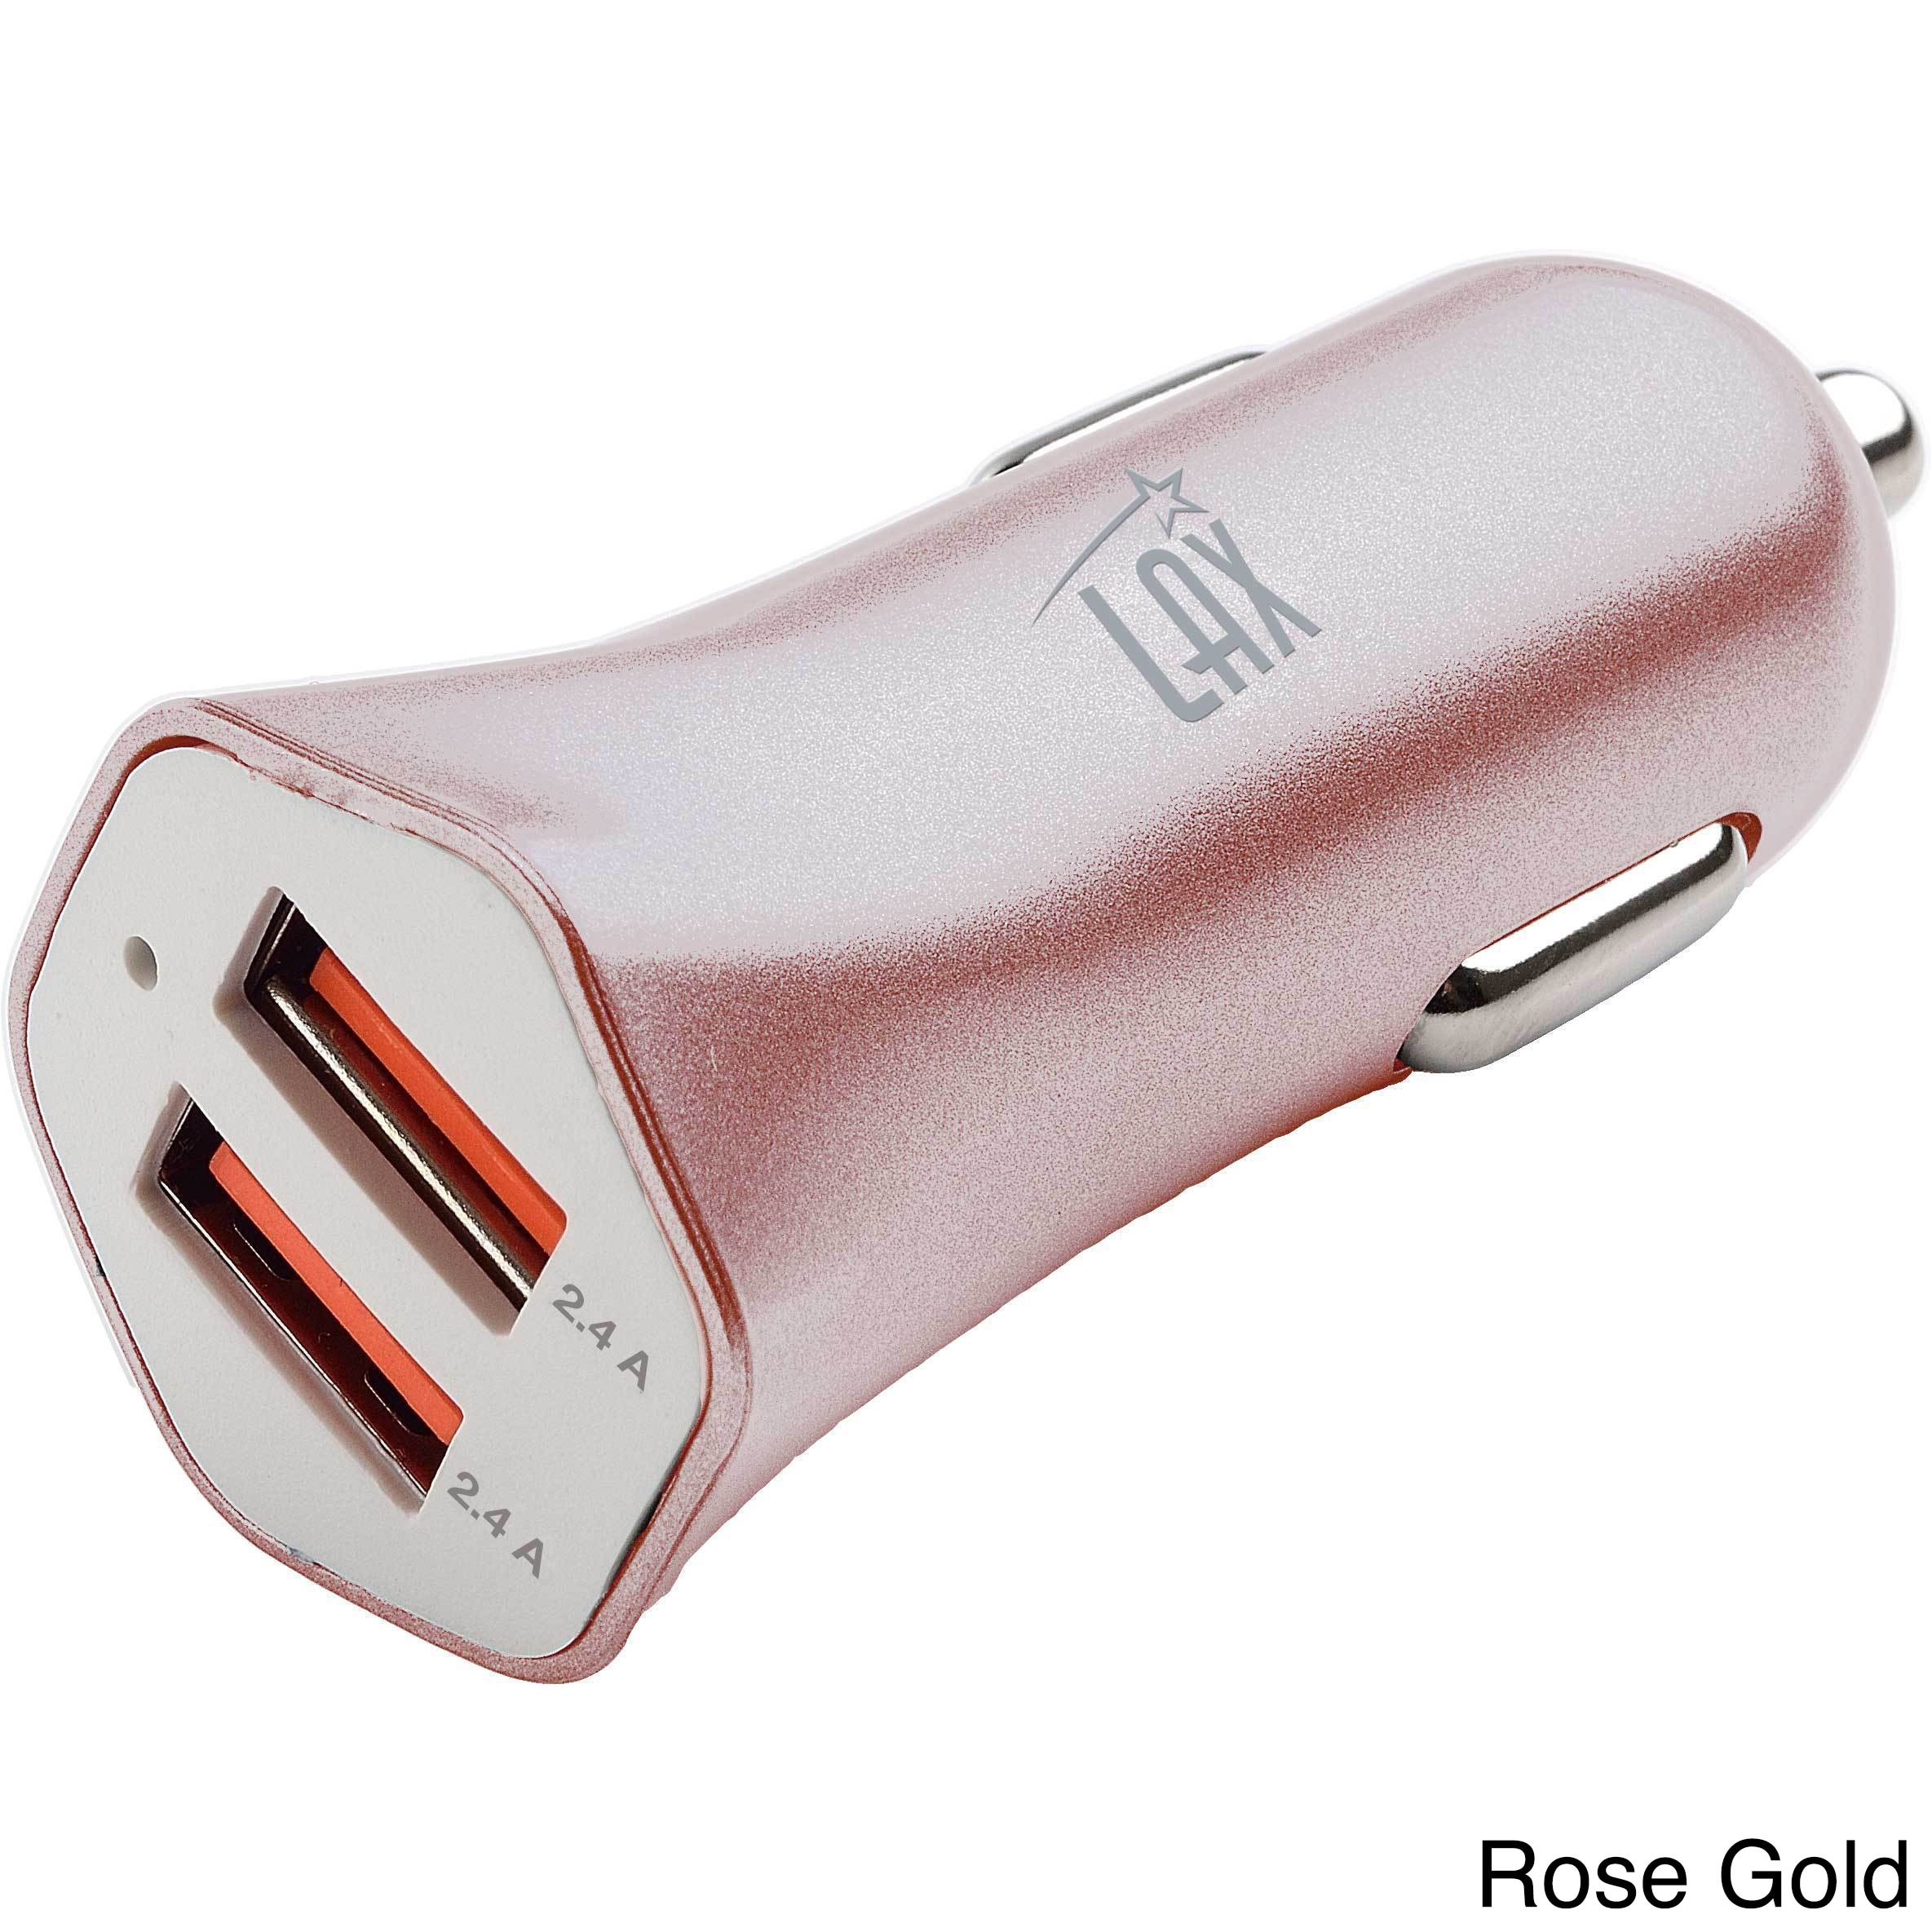 LAX Gadgets Dual USB 4.8A Fast Car Charger for iPhone 6S Plus...